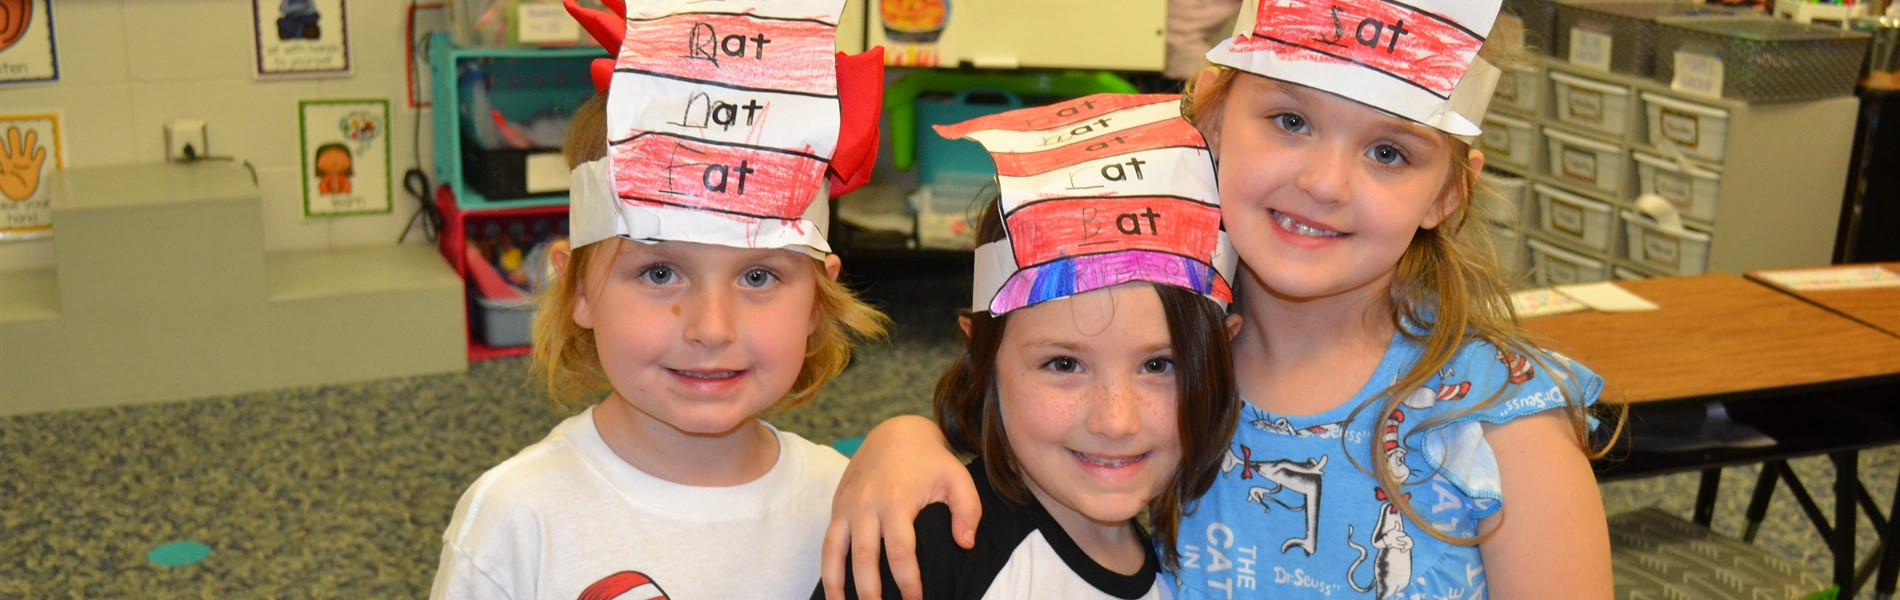 Dr. Seuss' birthday - kids wearing Cat in the Hat hats